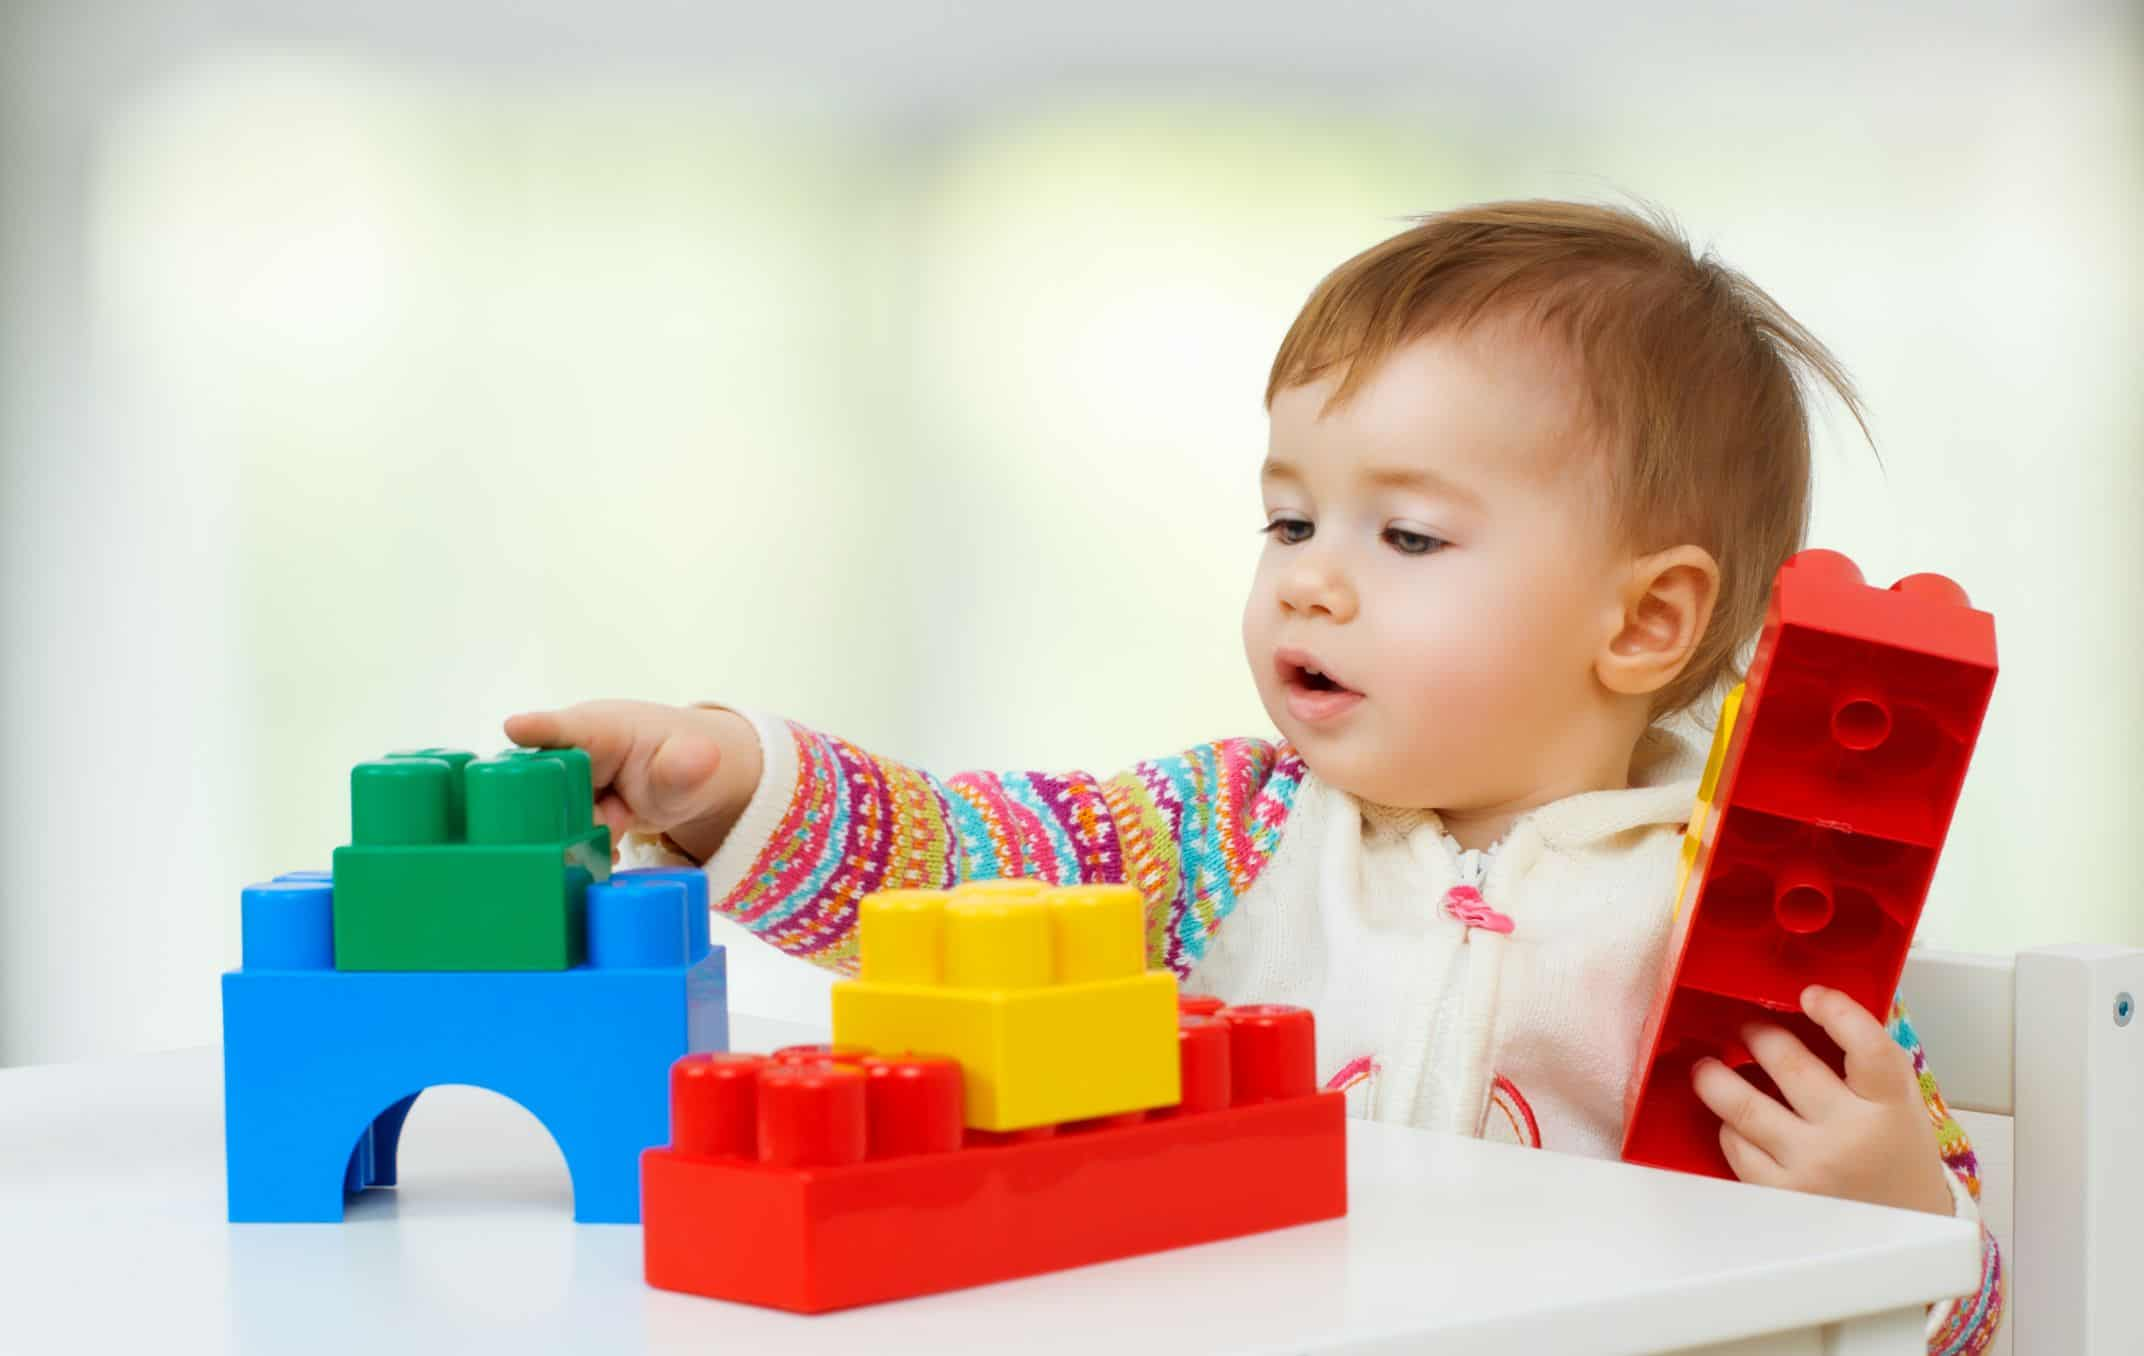 Baby activity ideas 0 to 18 months old to boost developmental skills